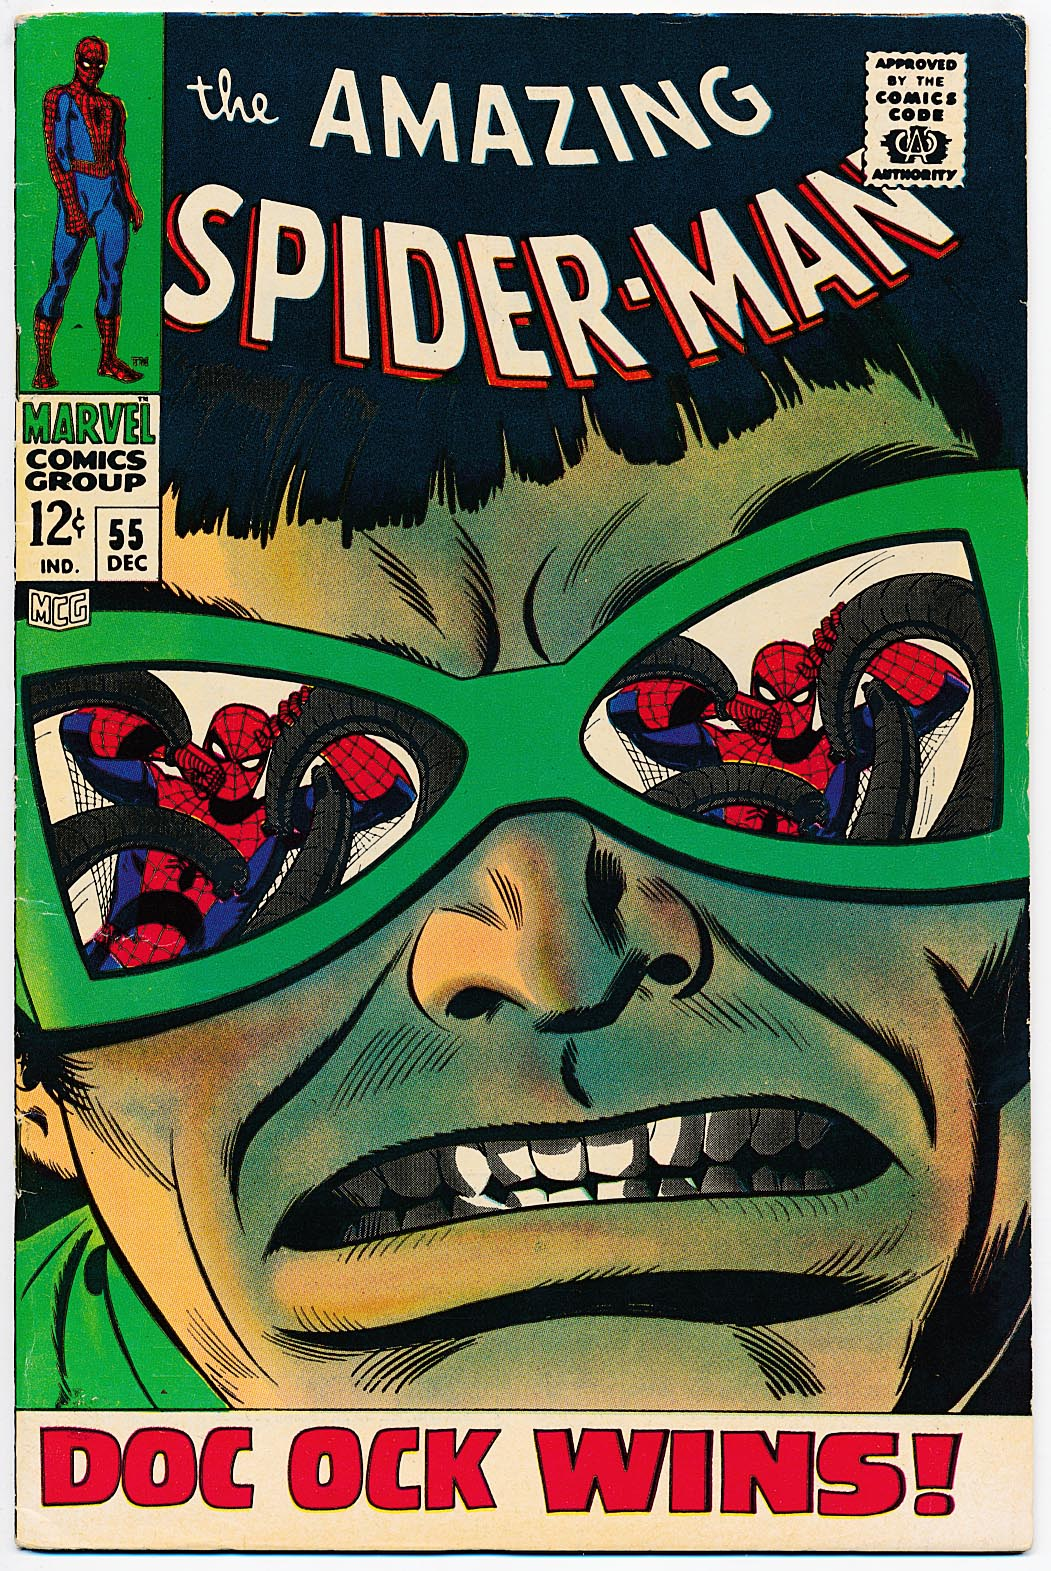 Amazing Spider-Man 55 -VF-VFNM